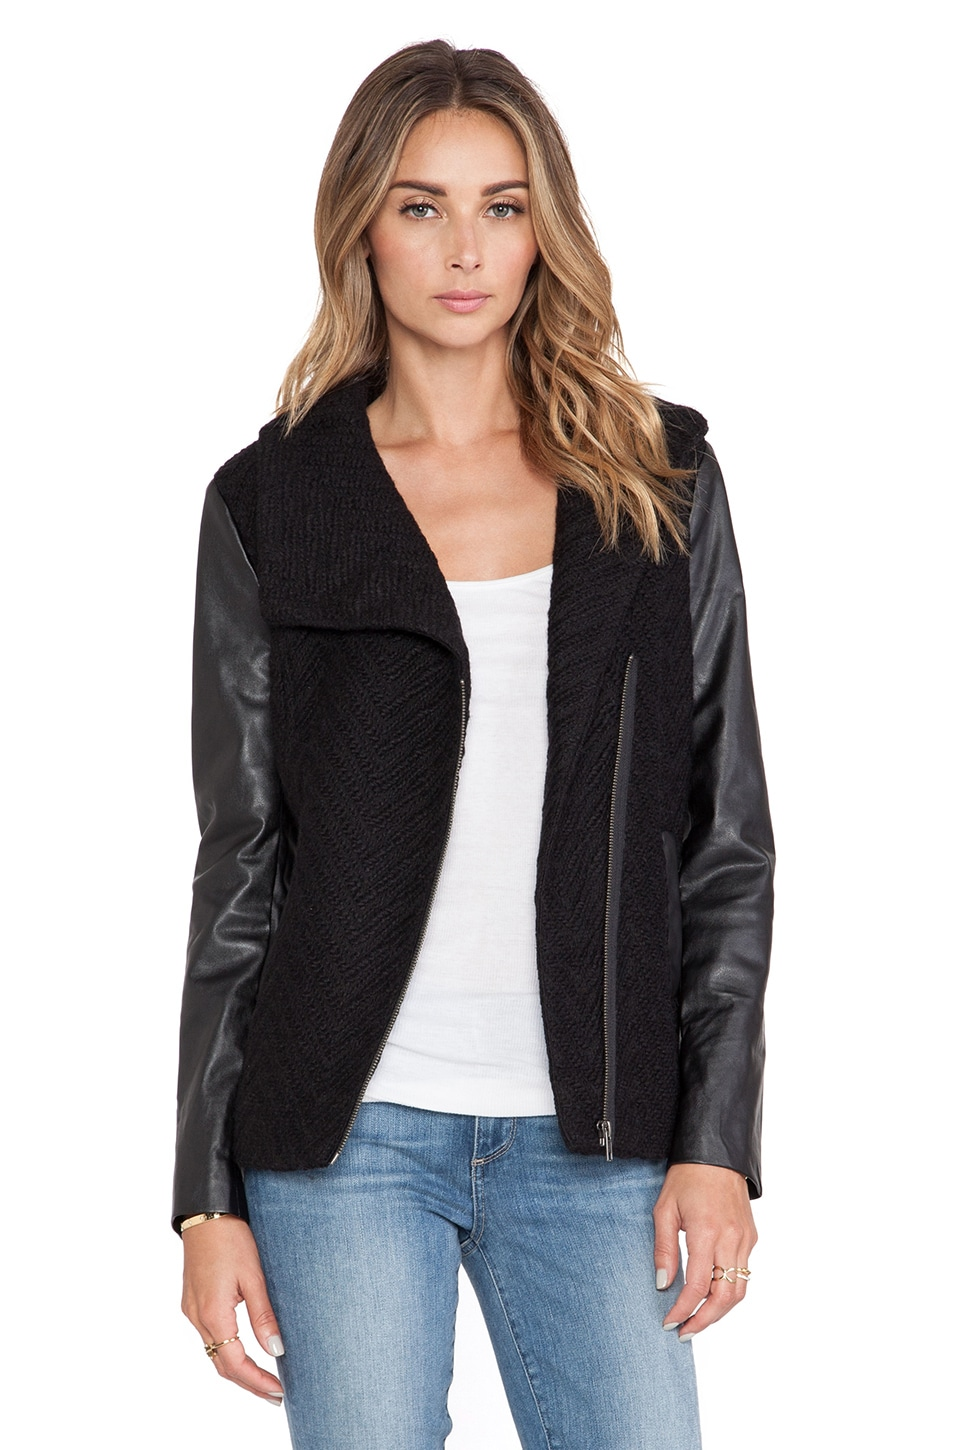 Ella Moss Trinity Jacket in Black